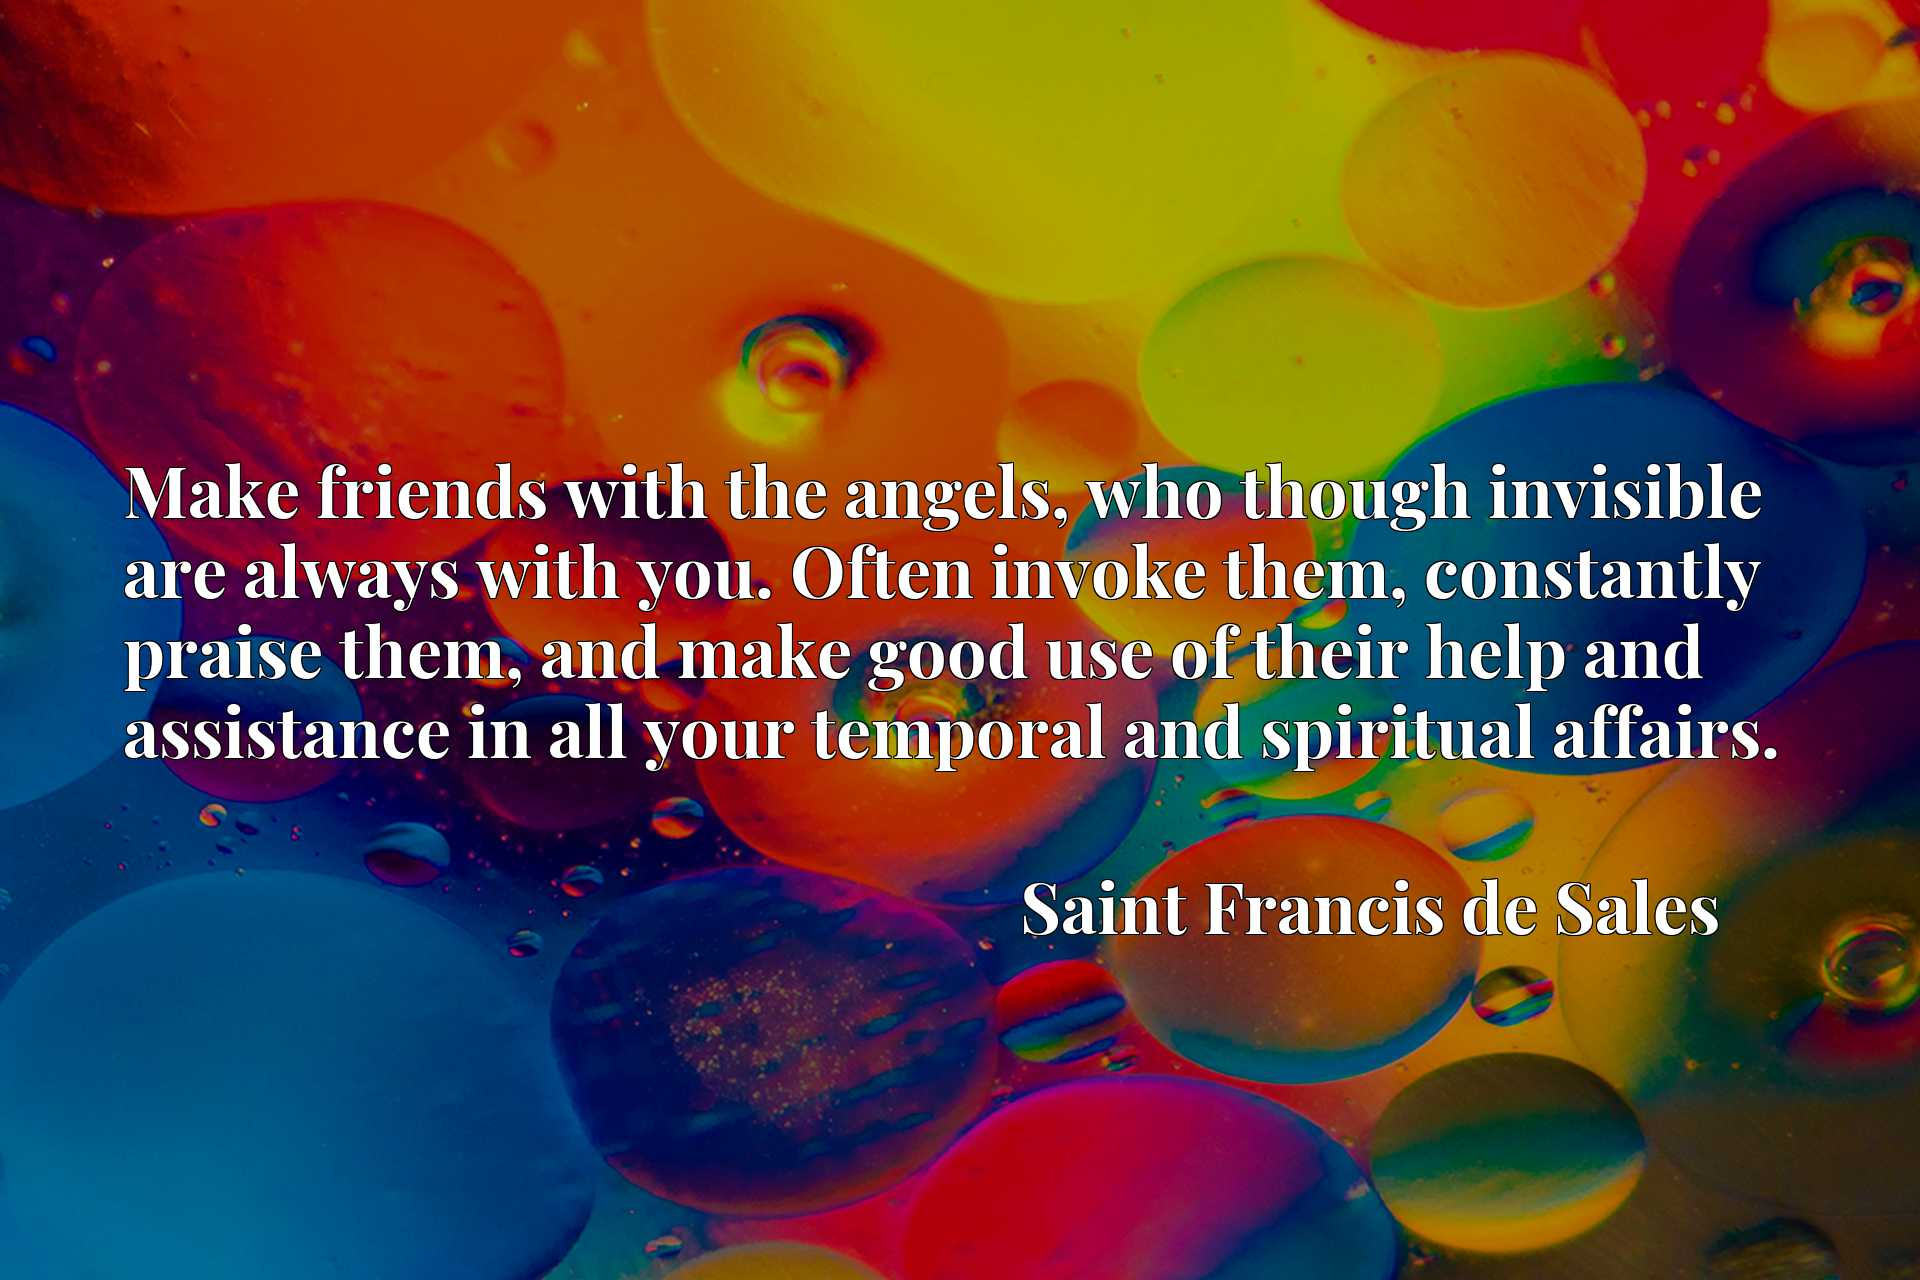 Make friends with the angels, who though invisible are always with you. Often invoke them, constantly praise them, and make good use of their help and assistance in all your temporal and spiritual affairs.